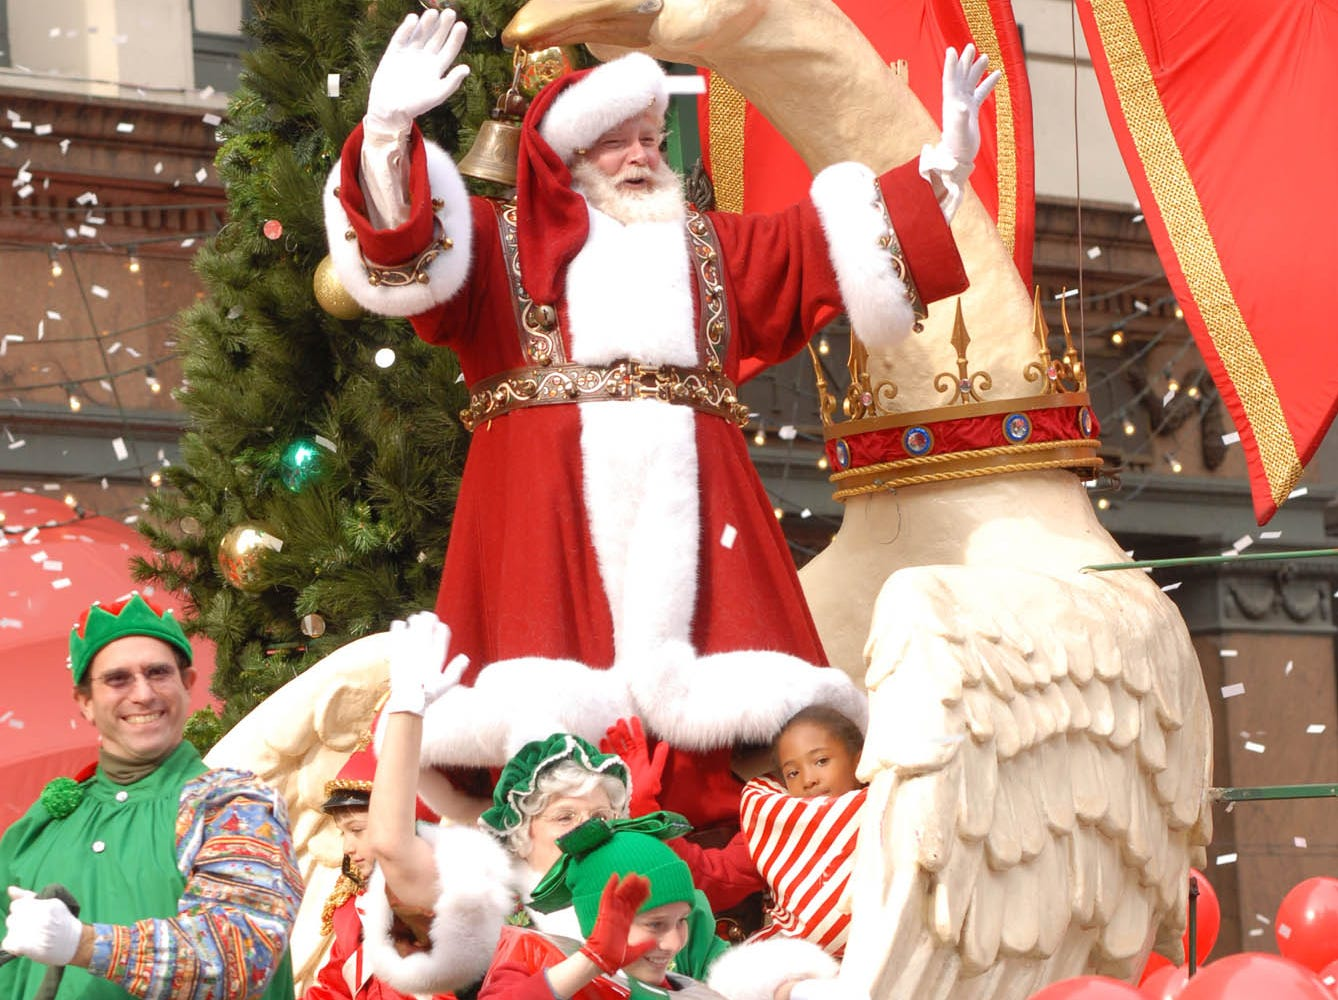 TV-THANKSGIVING -- Santa Claus rides by on a float during the 2007 Macy's Thanksgiving Parade. (Gannett News Service, Ali Paige Goldstein/NBC Universal/File)